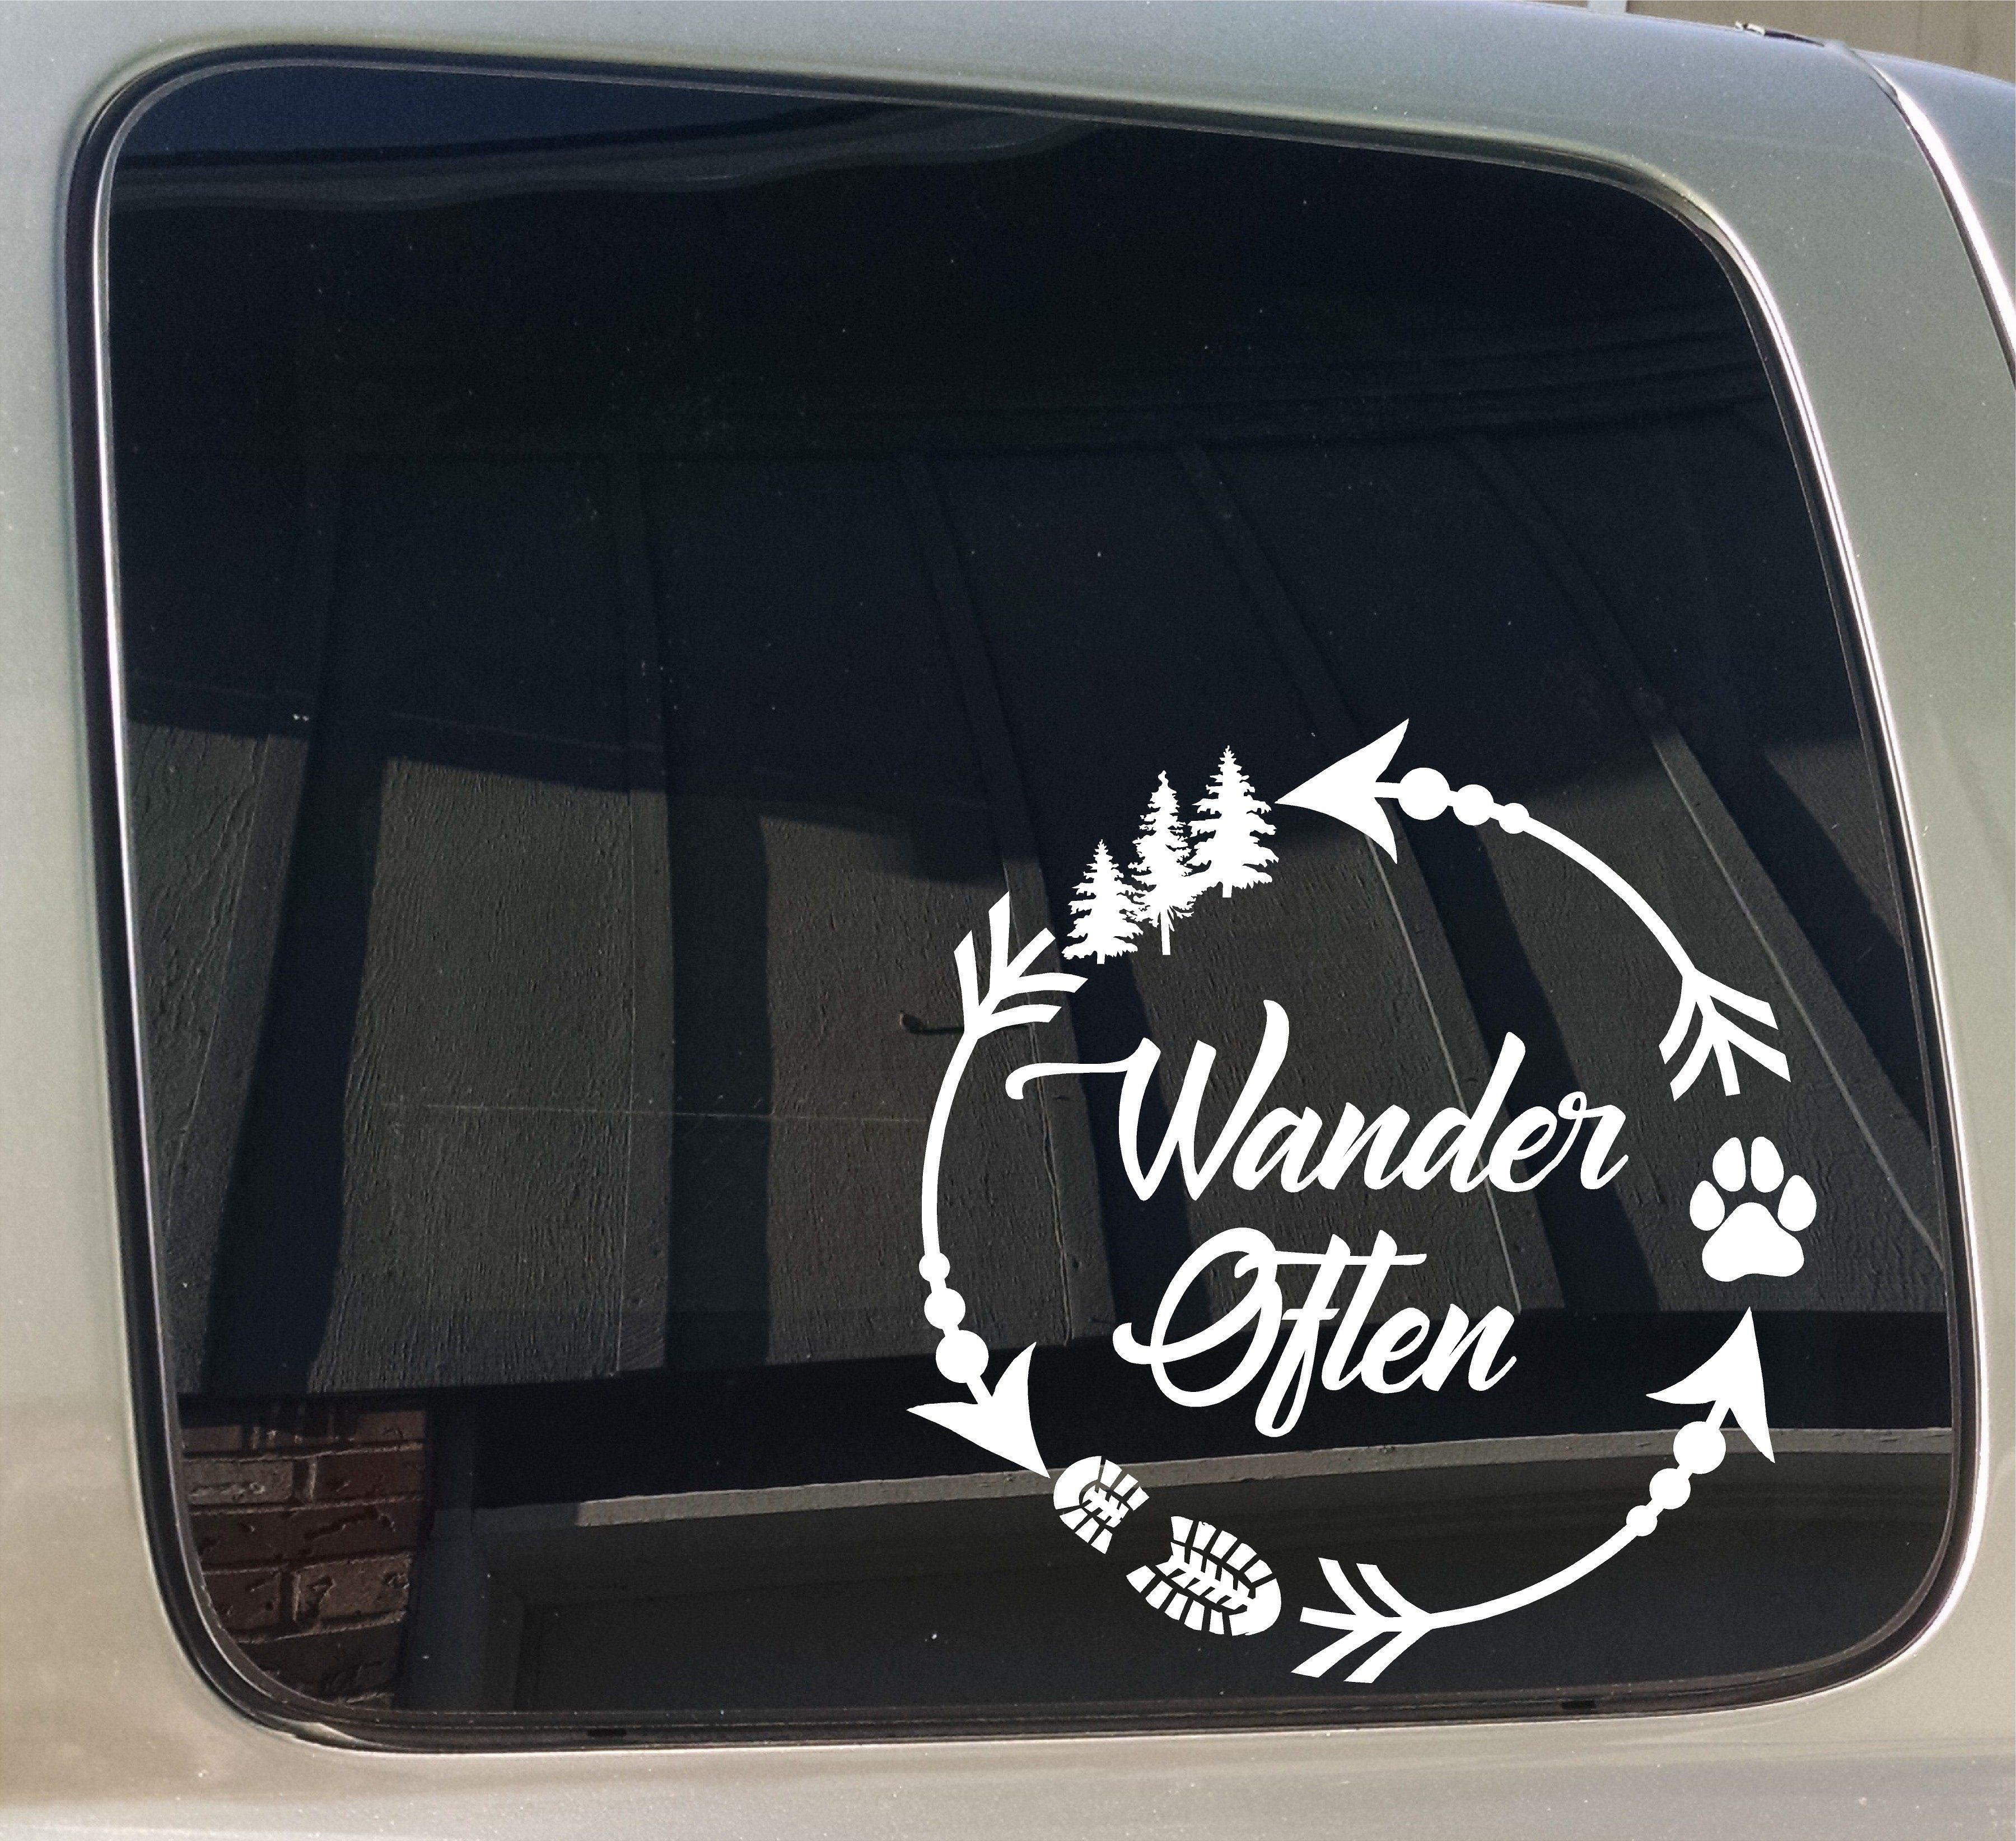 Wander Often Arrow Circle Camping Hiking Dog Paw Window Car Truck Trailer Sticker Decal Funny Car Decals Car Decals Vinyl Jeep Dogs [ 3288 x 3600 Pixel ]